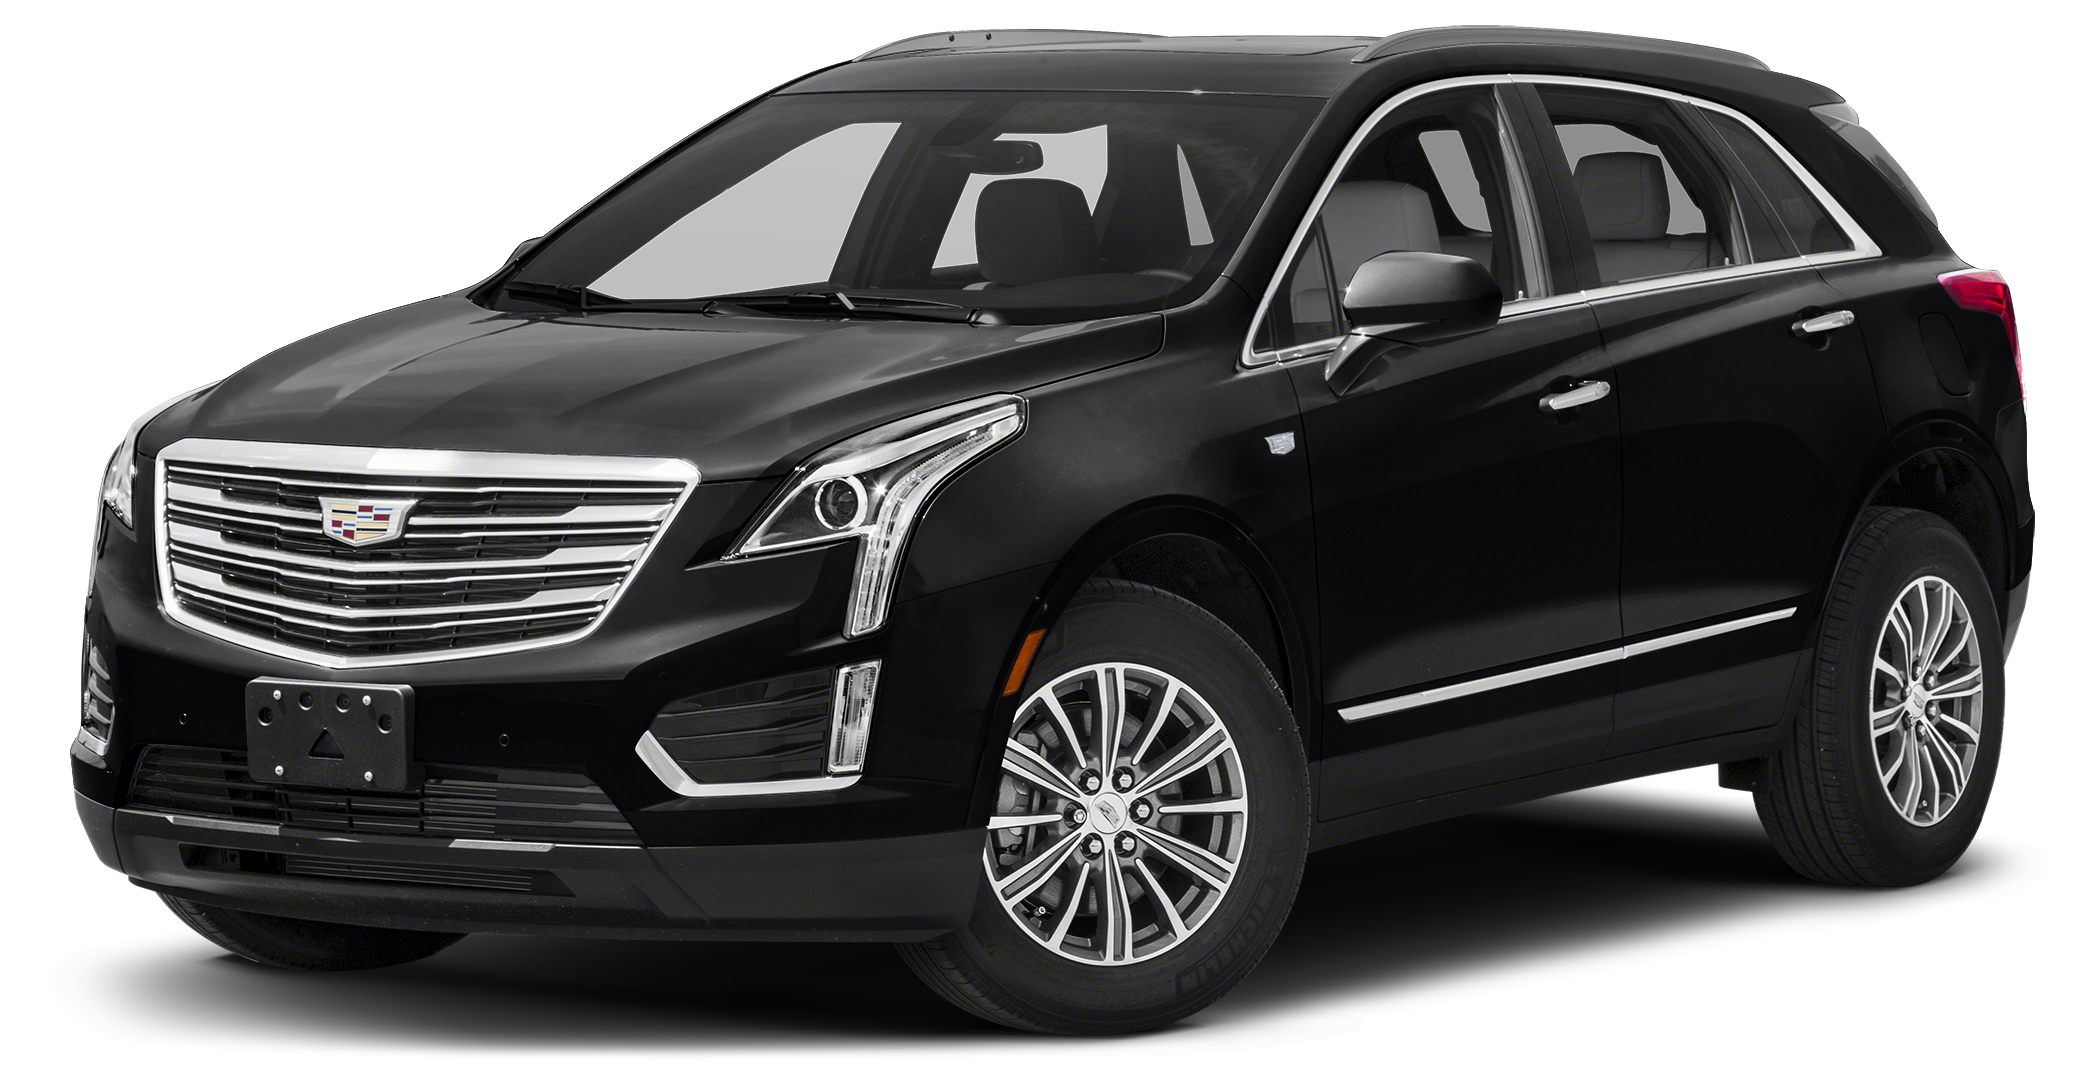 2018 Cadillac XT5 Premium Luxury Miles 11Color Black Metallic Stock 180131 VIN 1GYKNERS1JZ12